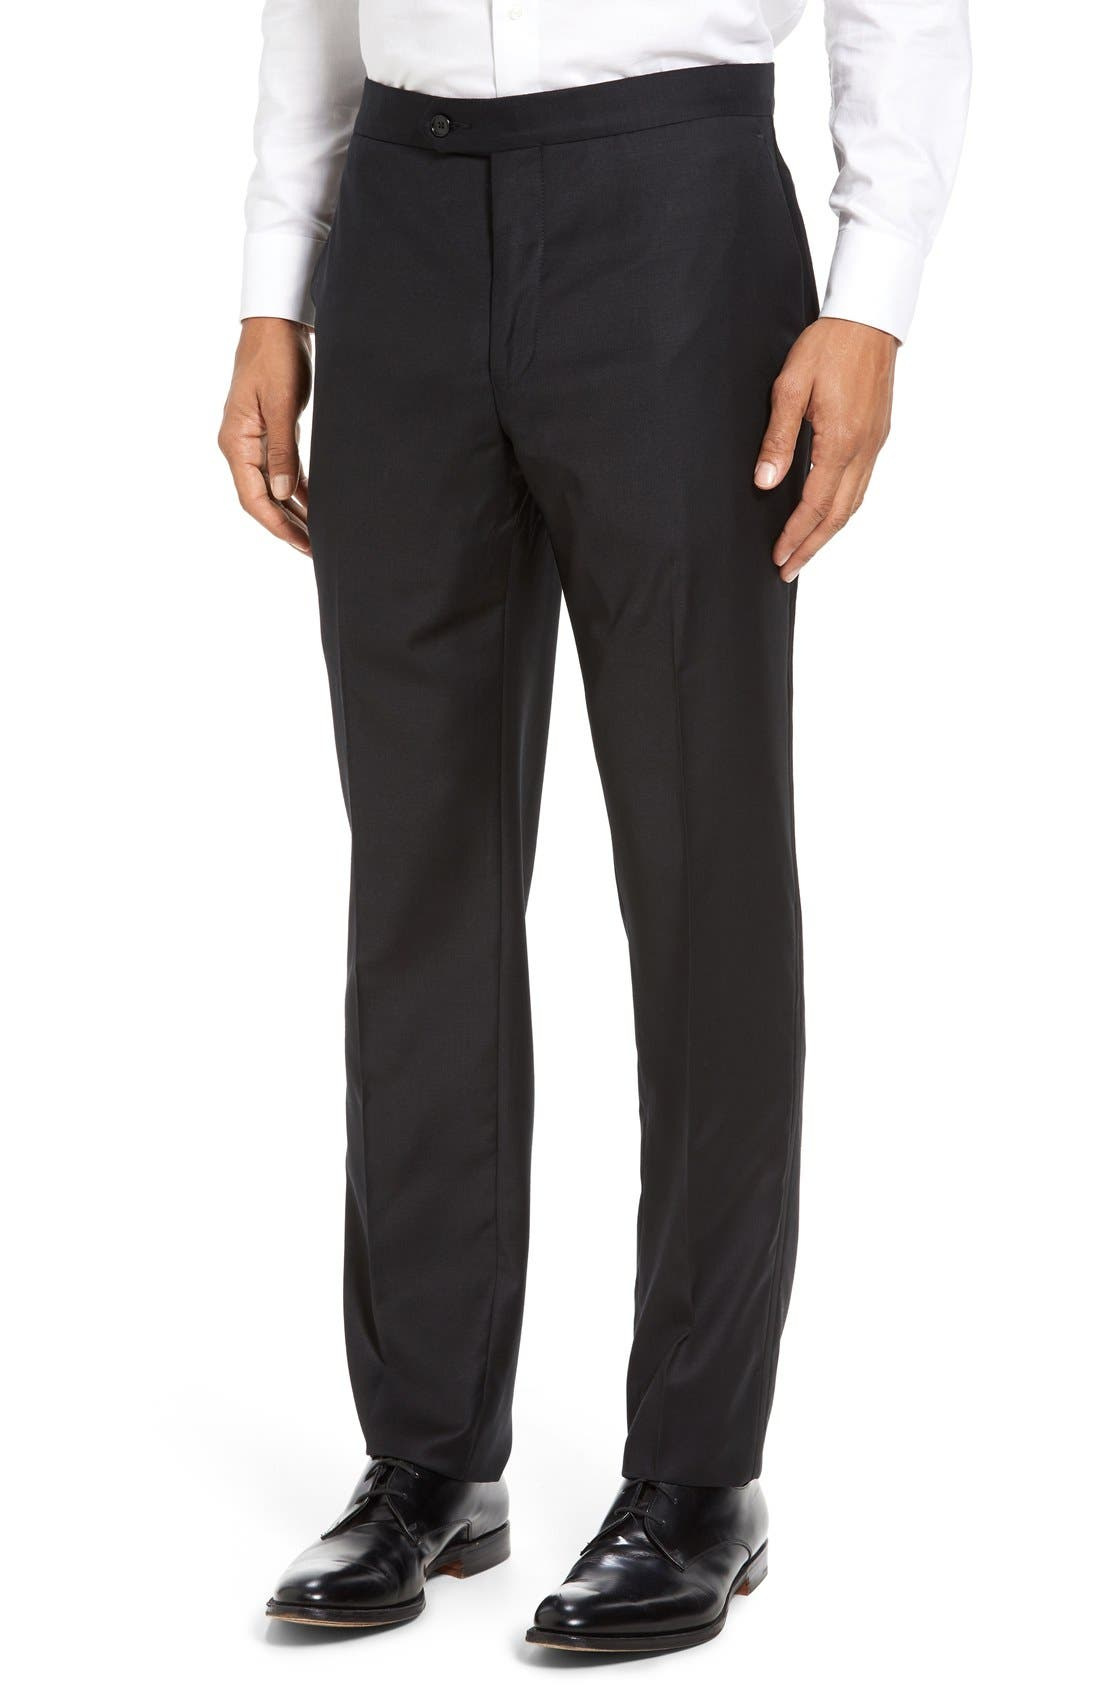 Dagger Flat Front Formal Wool Trousers,                             Main thumbnail 1, color,                             001